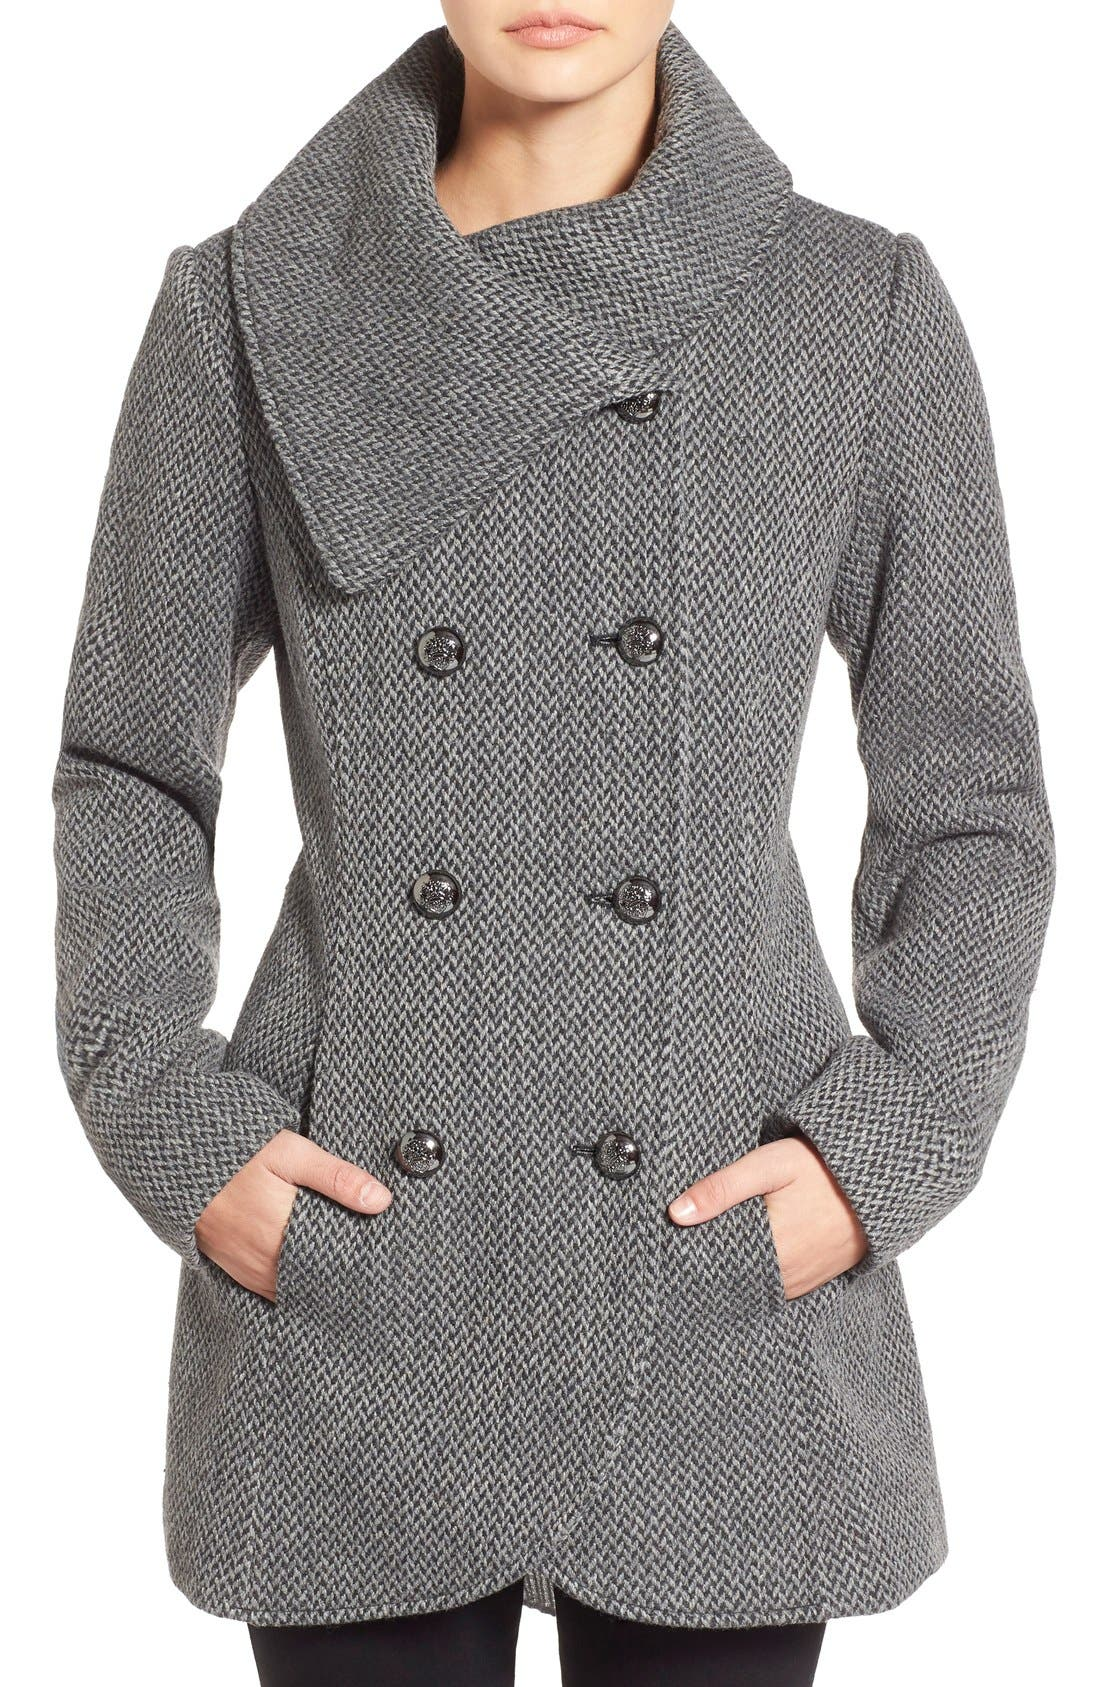 Main Image - Jessica Simpson Double Breasted Basket Weave Coat (Online Only)